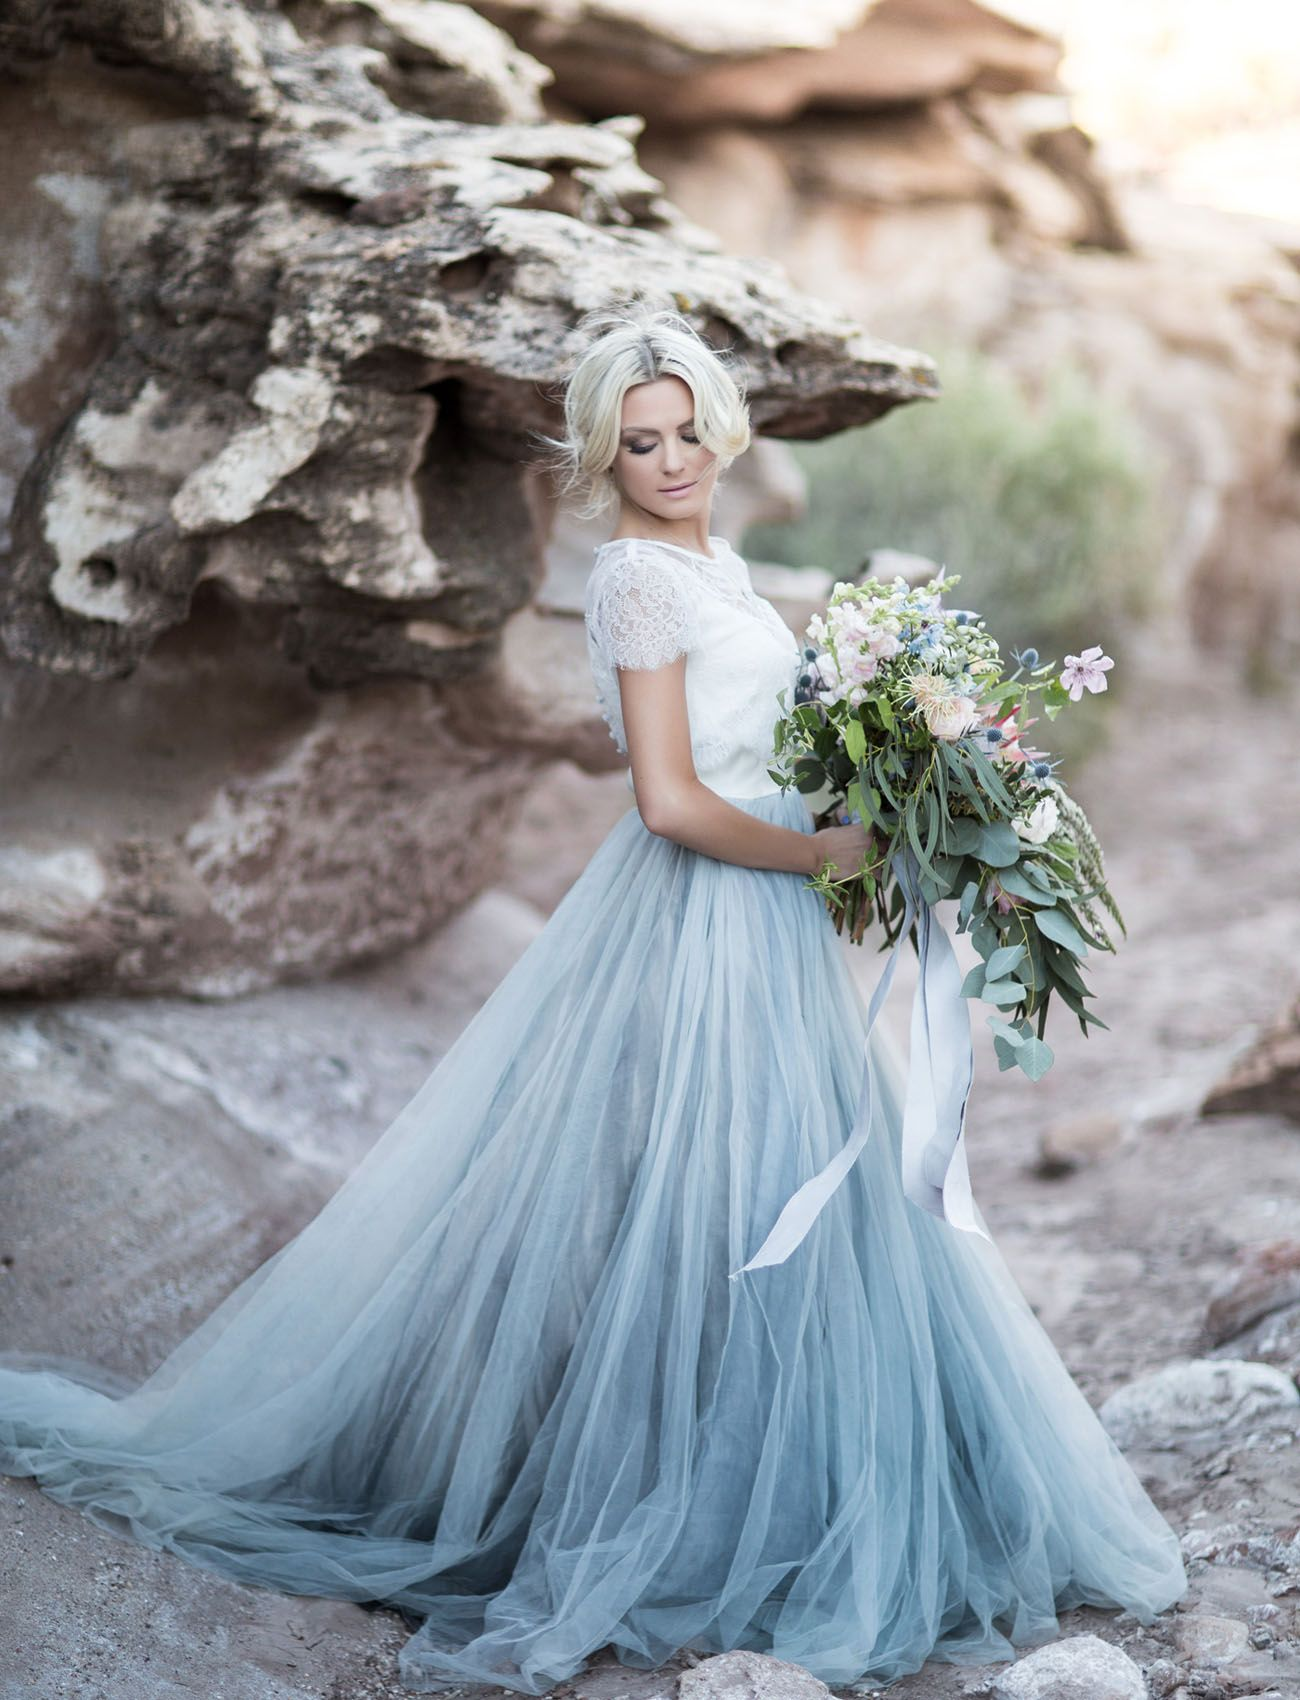 Desert Wedding Inspiration At Zion National Park Blue Wedding